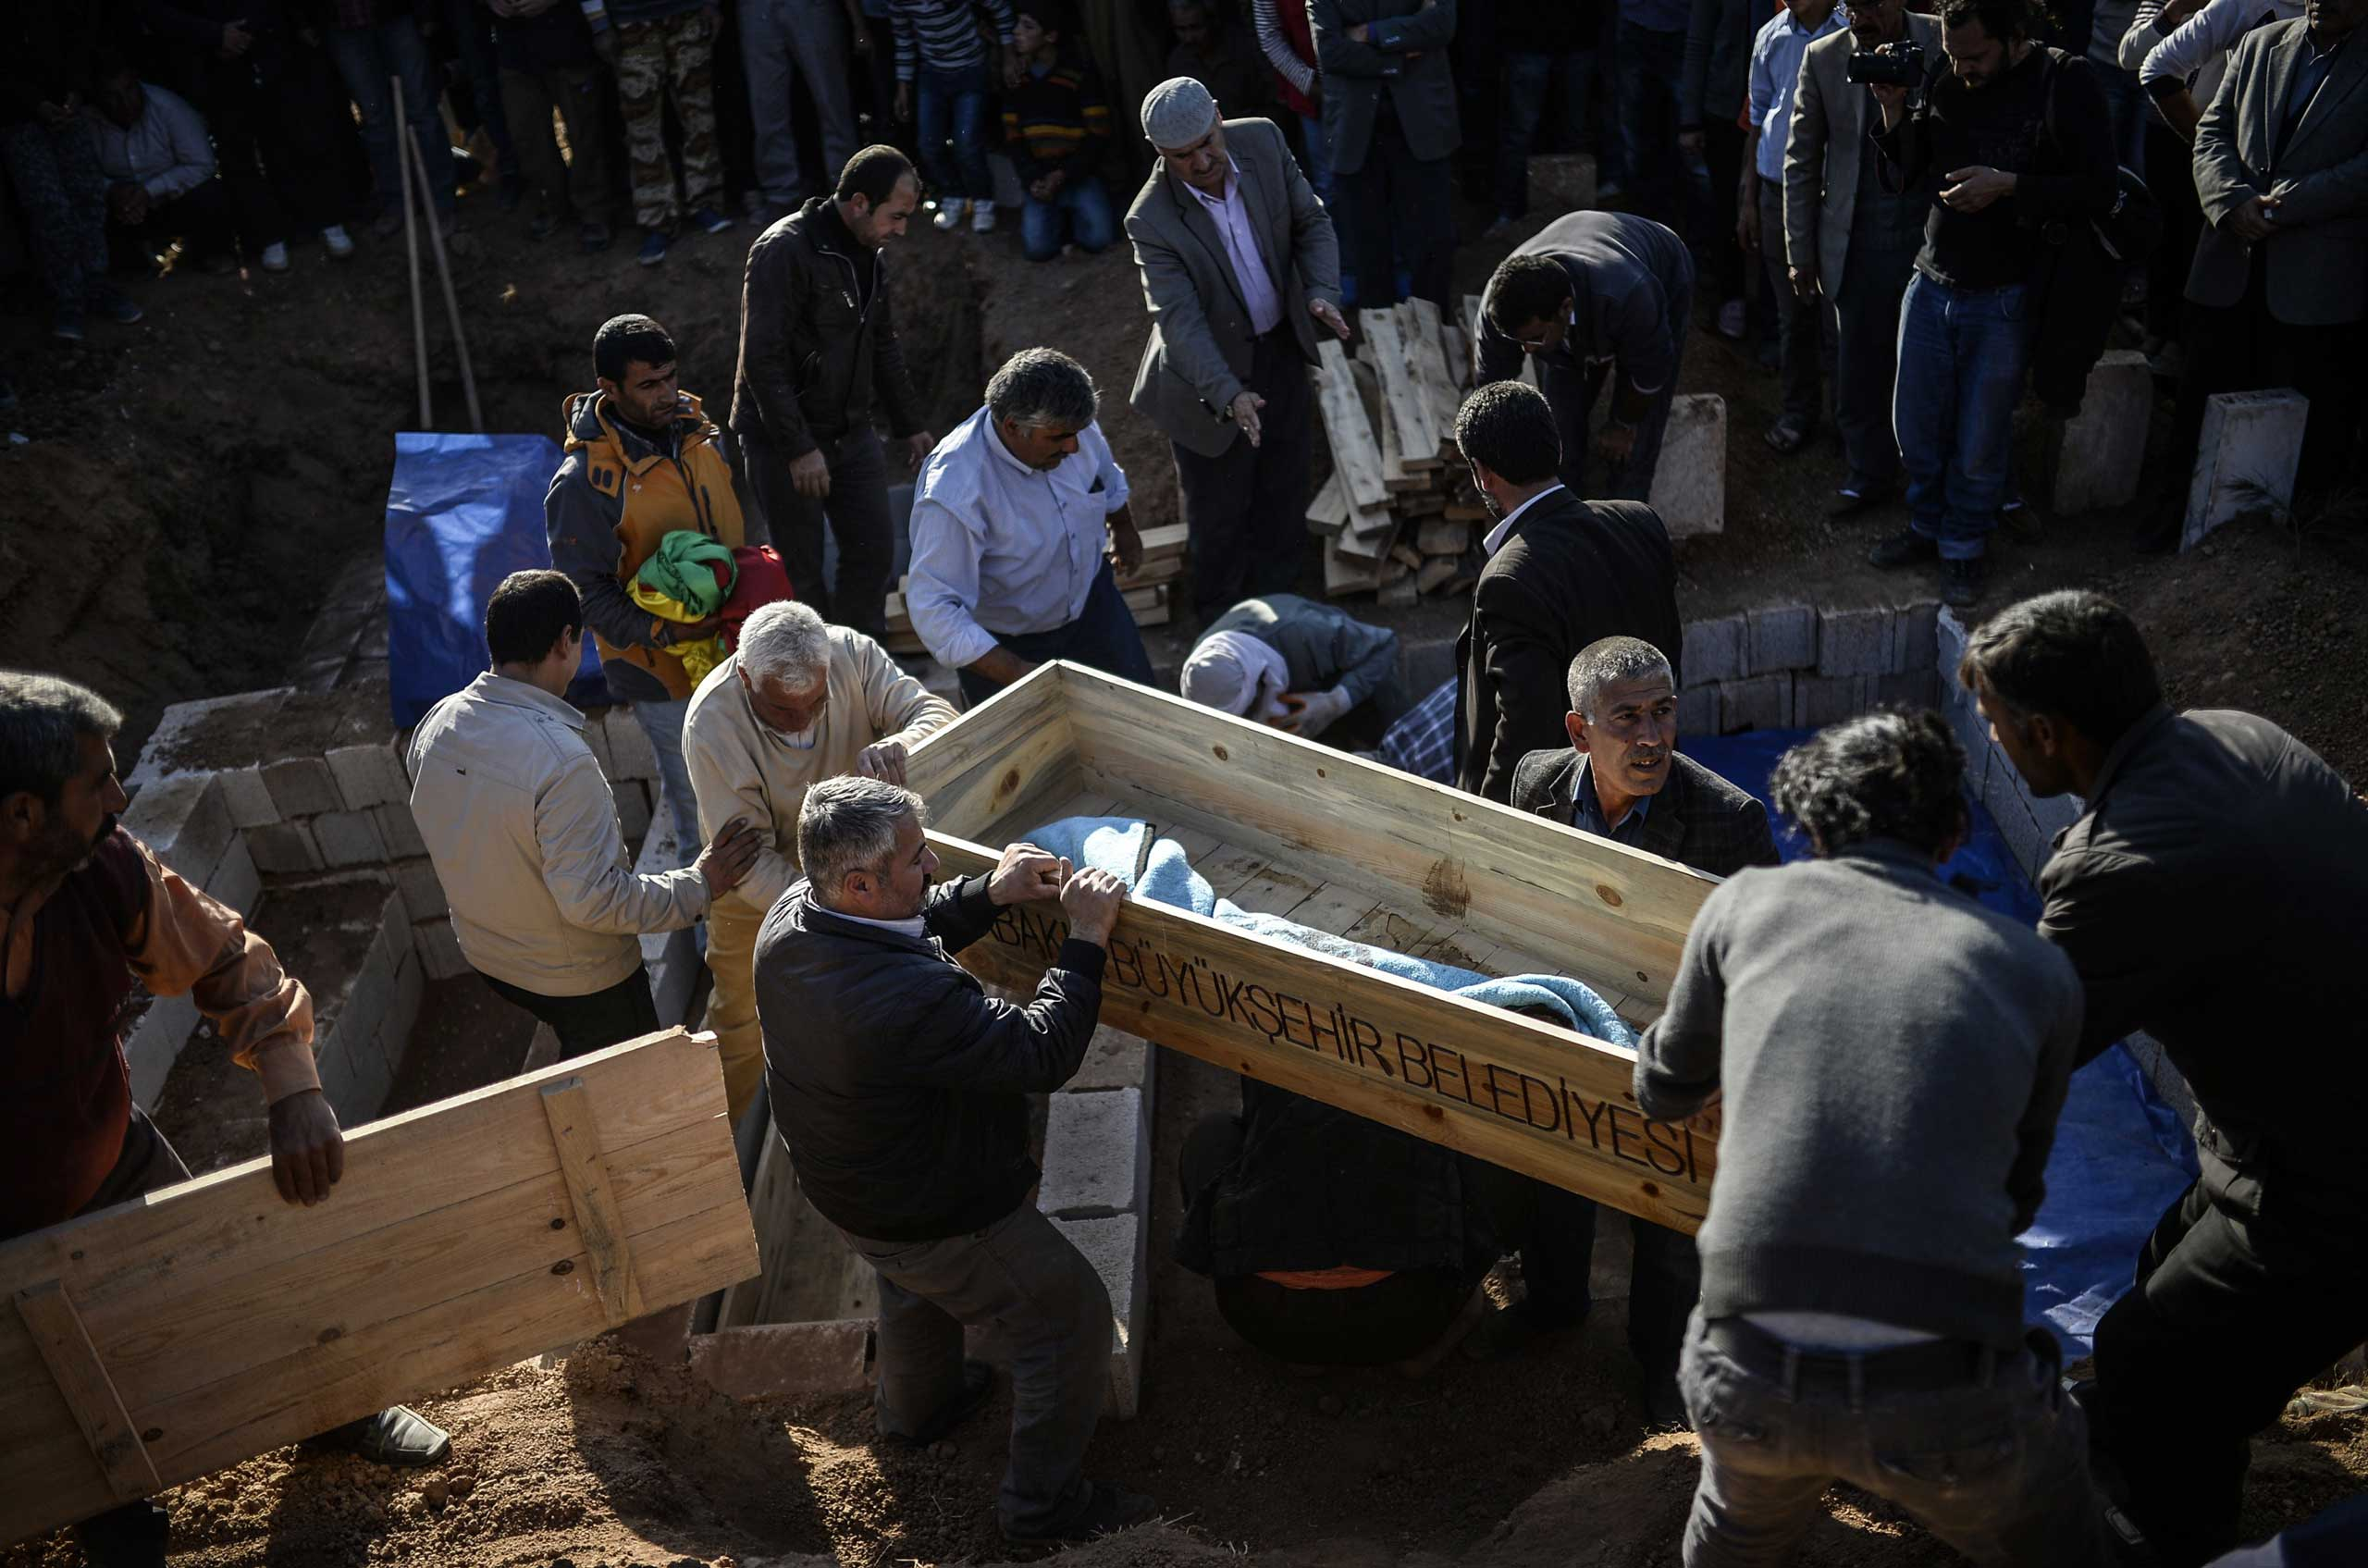 Men carry a coffin at a cemetery in Suruc, in the province of Sanliurfa, on Oct. 23, 2014, during the funeral of three Kurdish fighters who died in clashes with the Islamic State (IS) in neighbouring Syria.